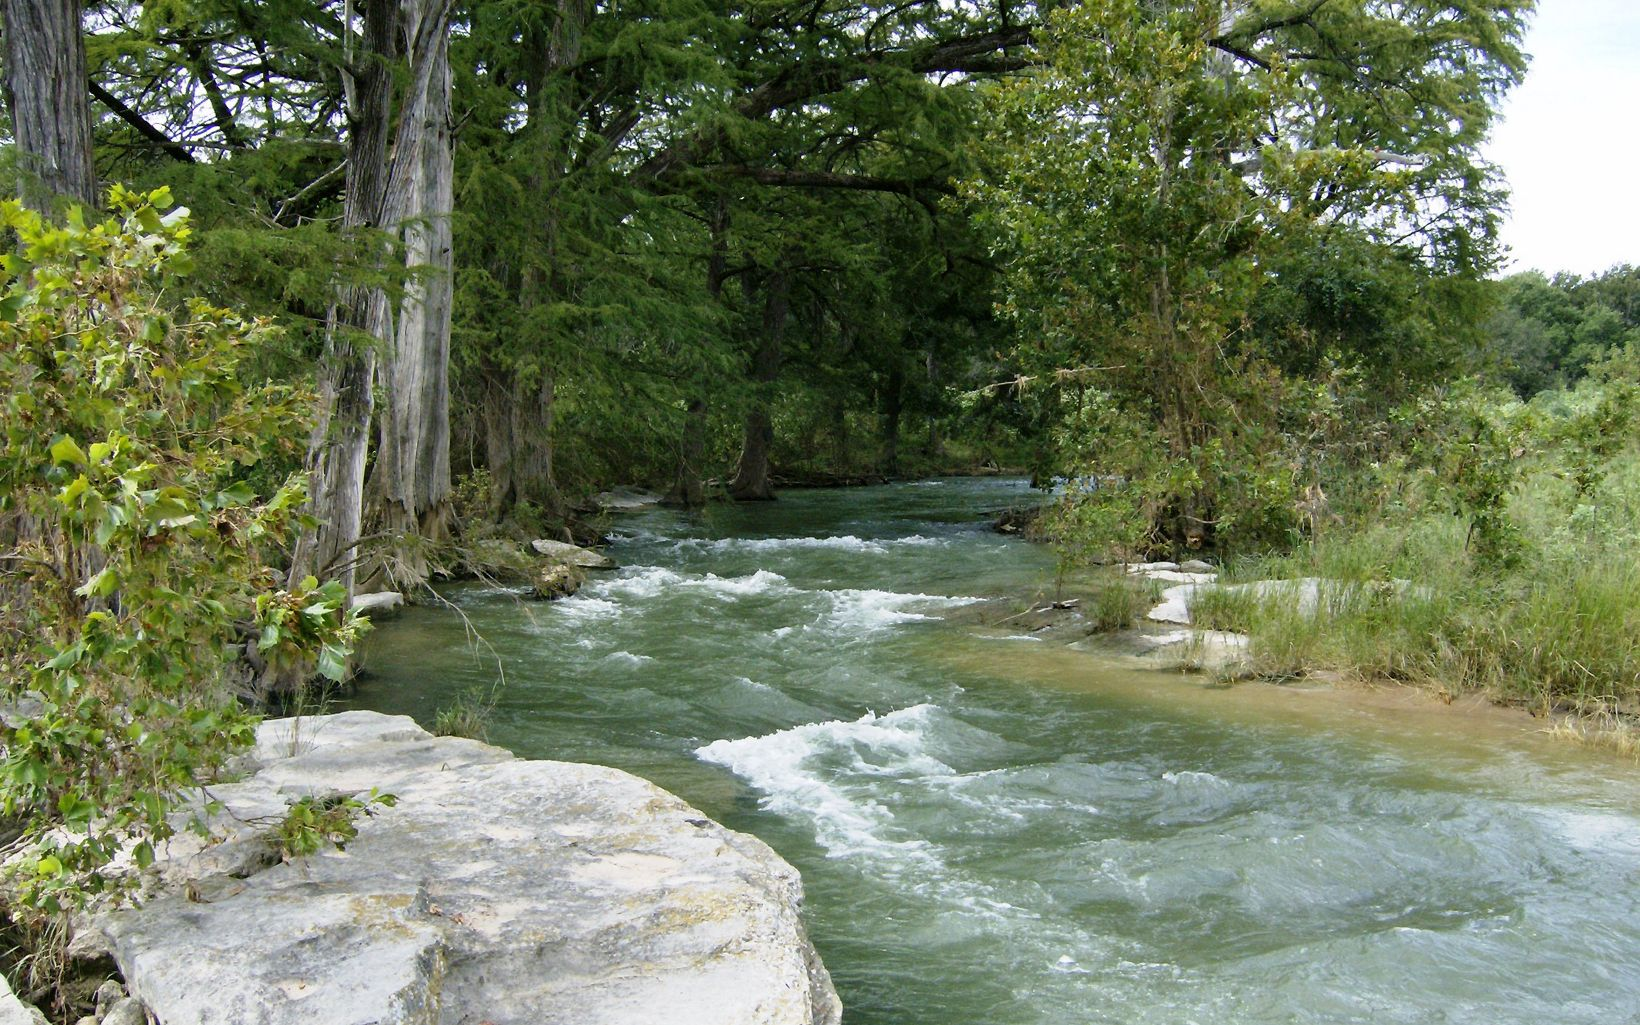 Fast-flowing water in the Pedernales River, Texas with trees on one bank and sand and grassy vegetation on the other.